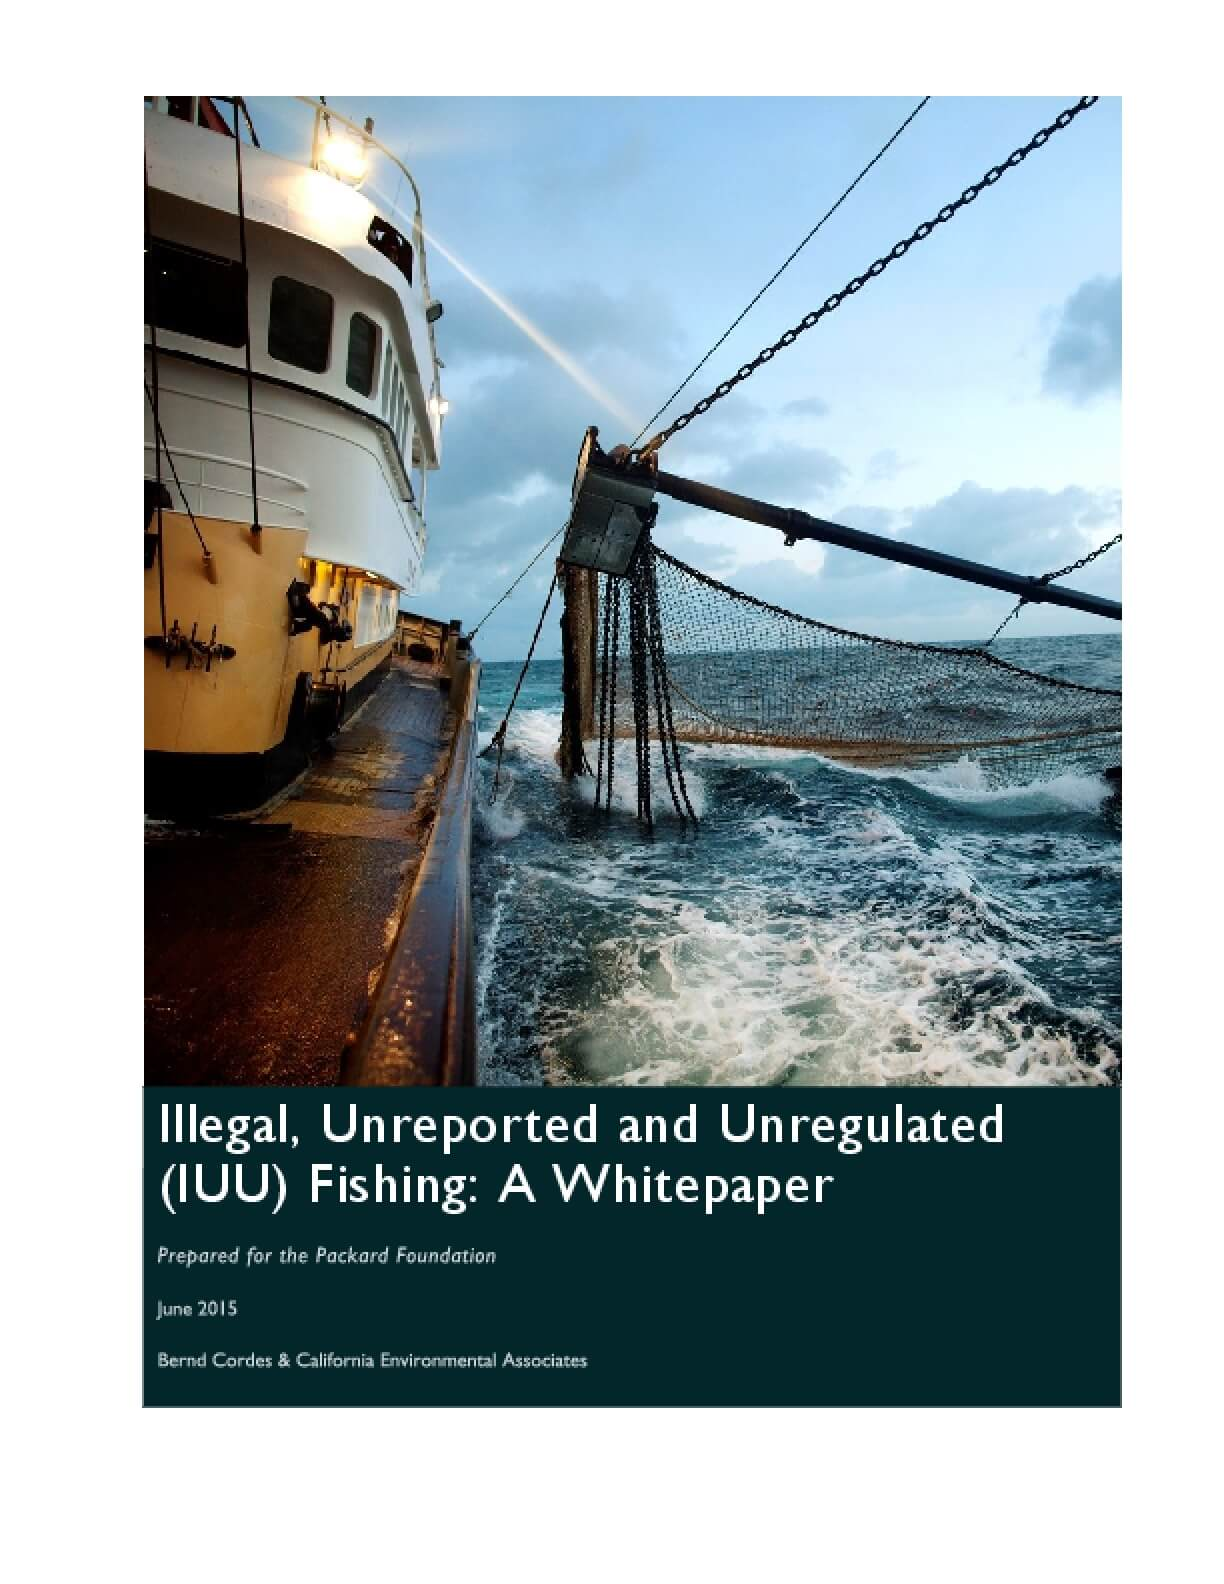 Illegal, Unreported and Unregulated (IUU) Fishing: A Whitepaper